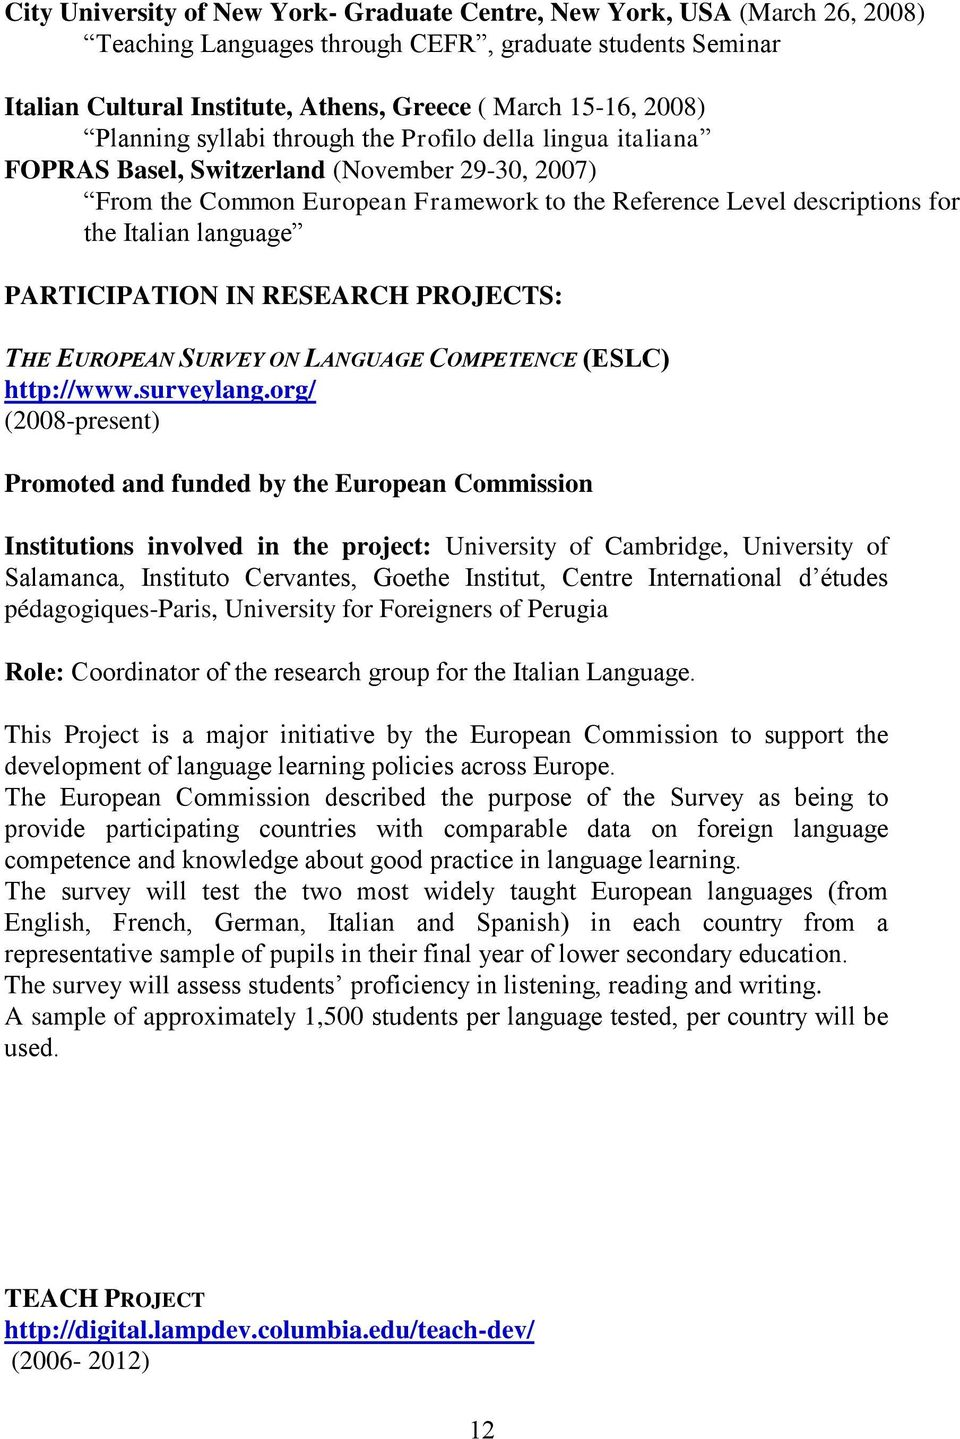 language PARTICIPATION IN RESEARCH PROJECTS: THE EUROPEAN SURVEY ON LANGUAGE COMPETENCE (ESLC) http://www.surveylang.